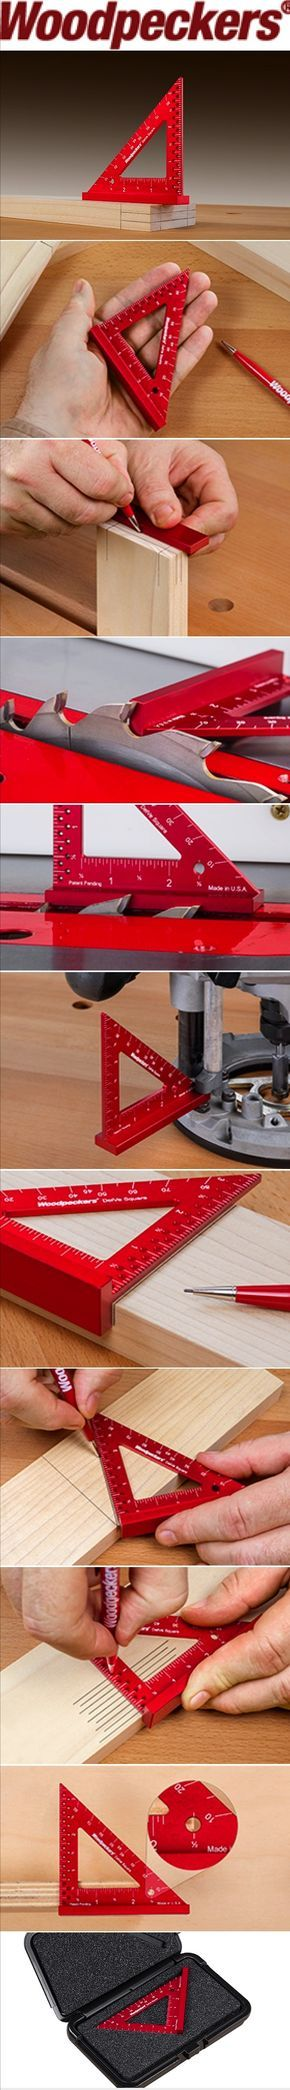 """The Swiss Army Knife of Woodworking Squares All This in a Pocket-Sized Square. It's amazing how many practical uses can be packed into a square not even 4"""" long. Joinery Layout Wiz Gauging Tool Measureless Marking Machine Set Up Measurement Tool Angle Marking And More"""